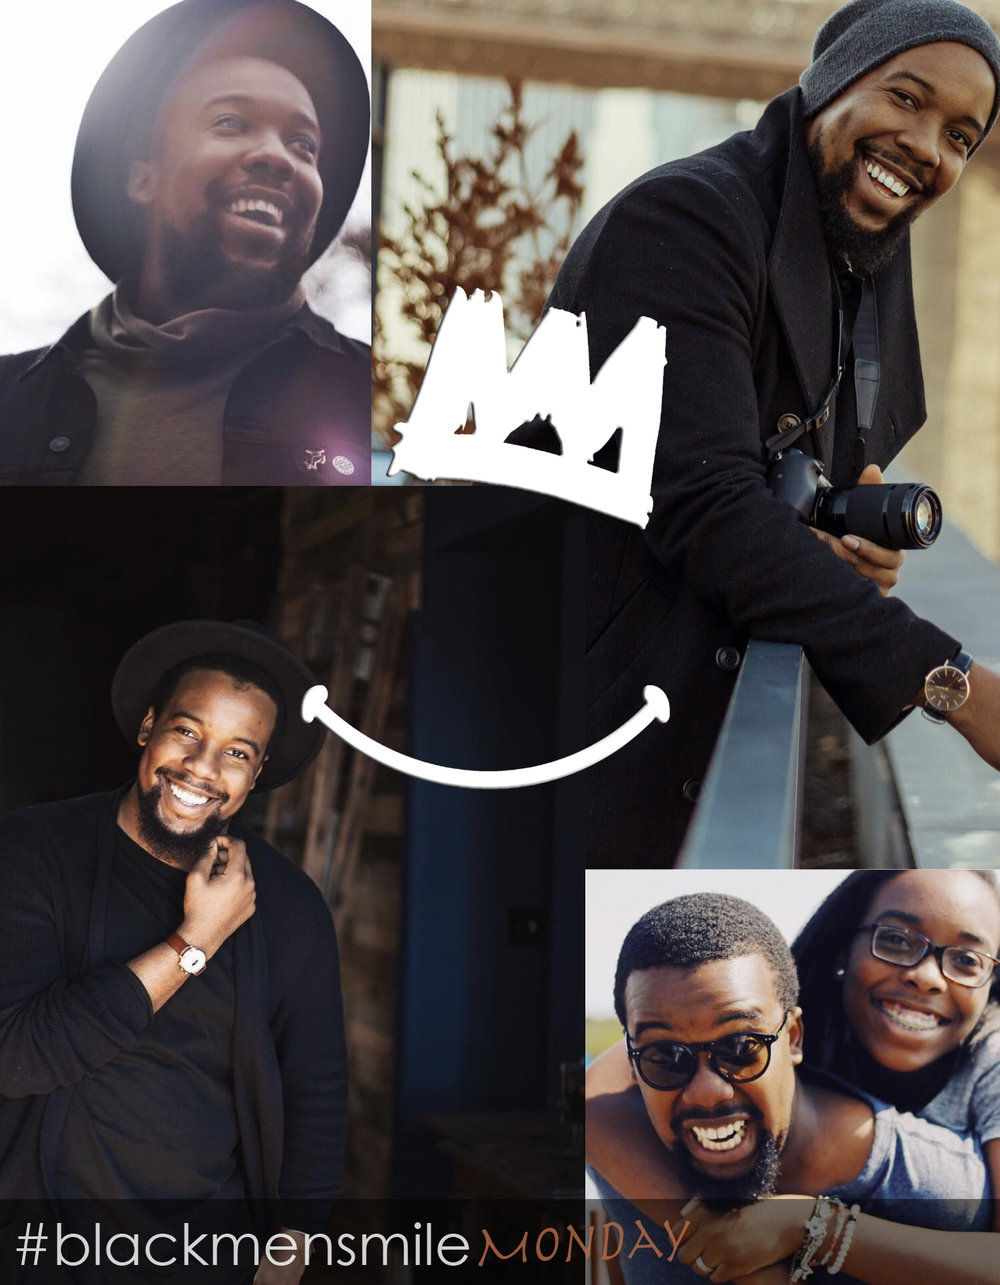 black-men-smile-monday-obi-okolo.jpg